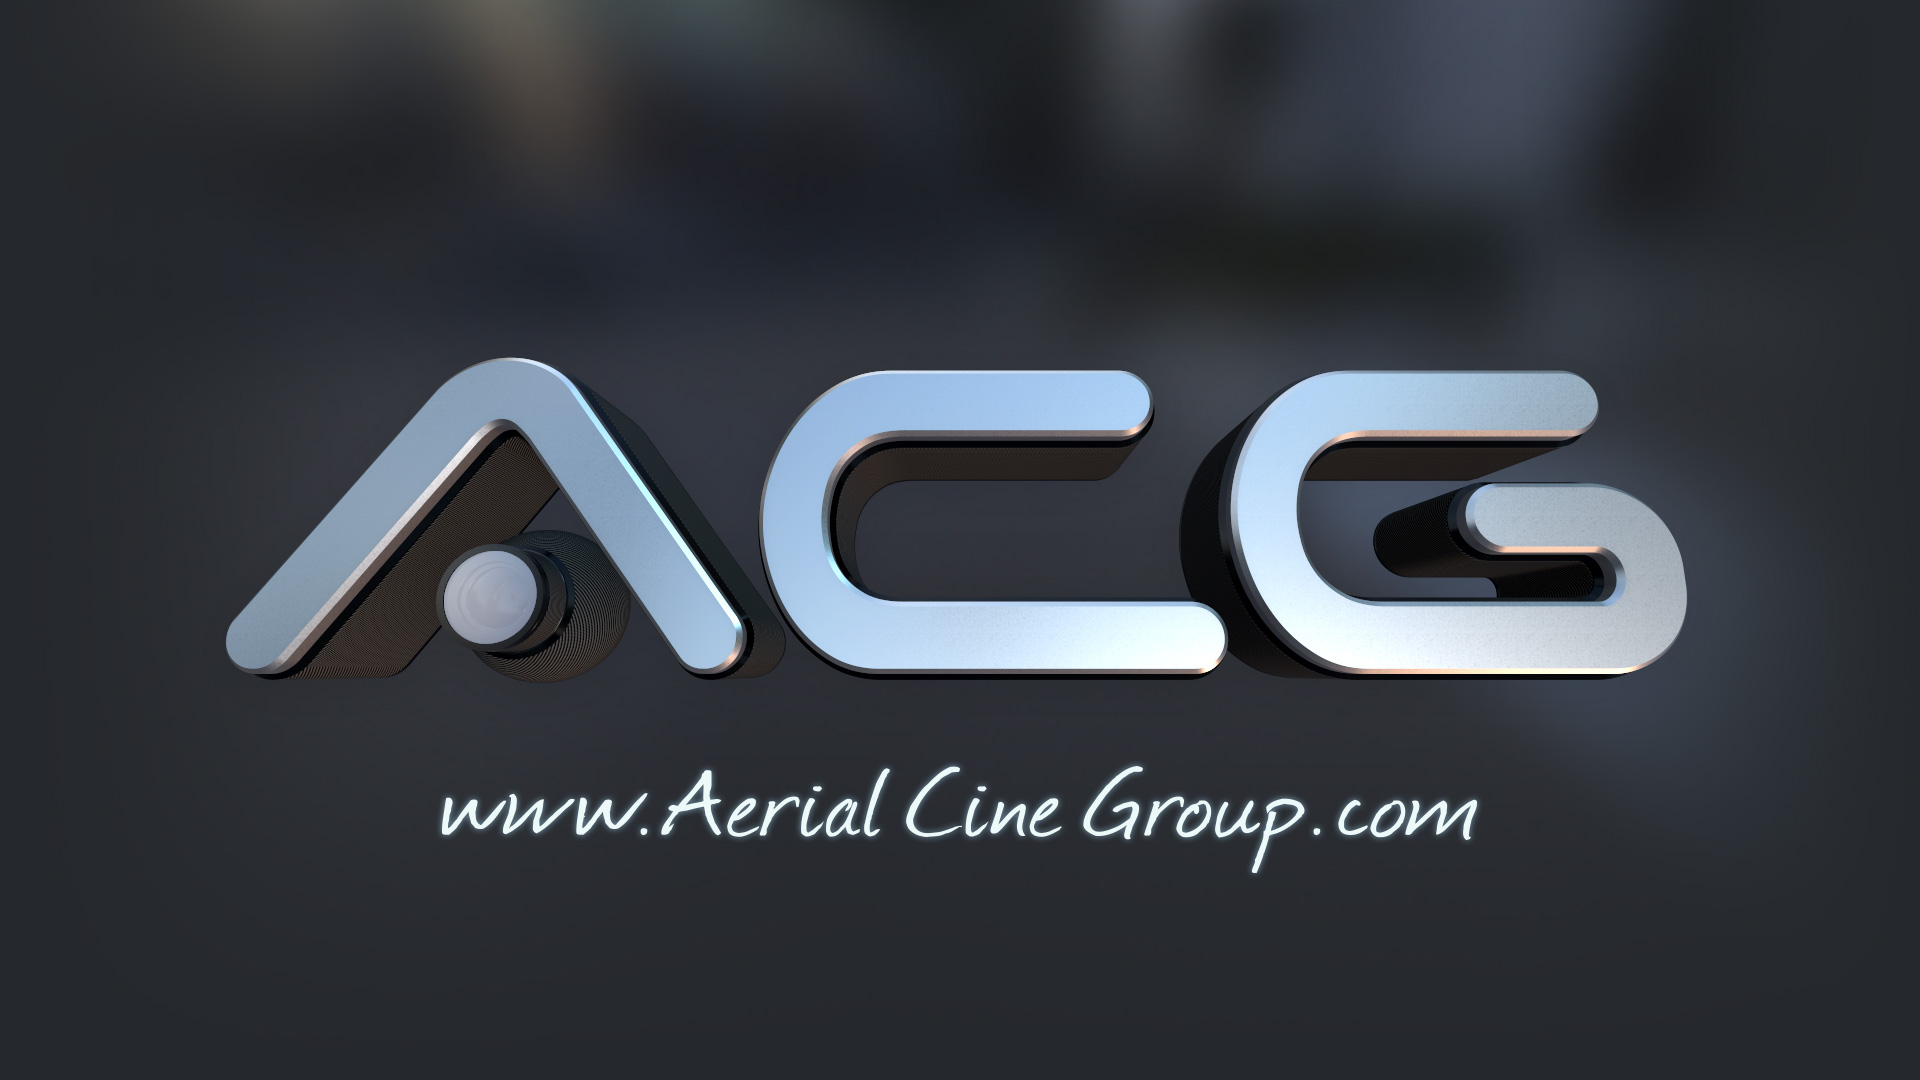 Aerial Ciné Group